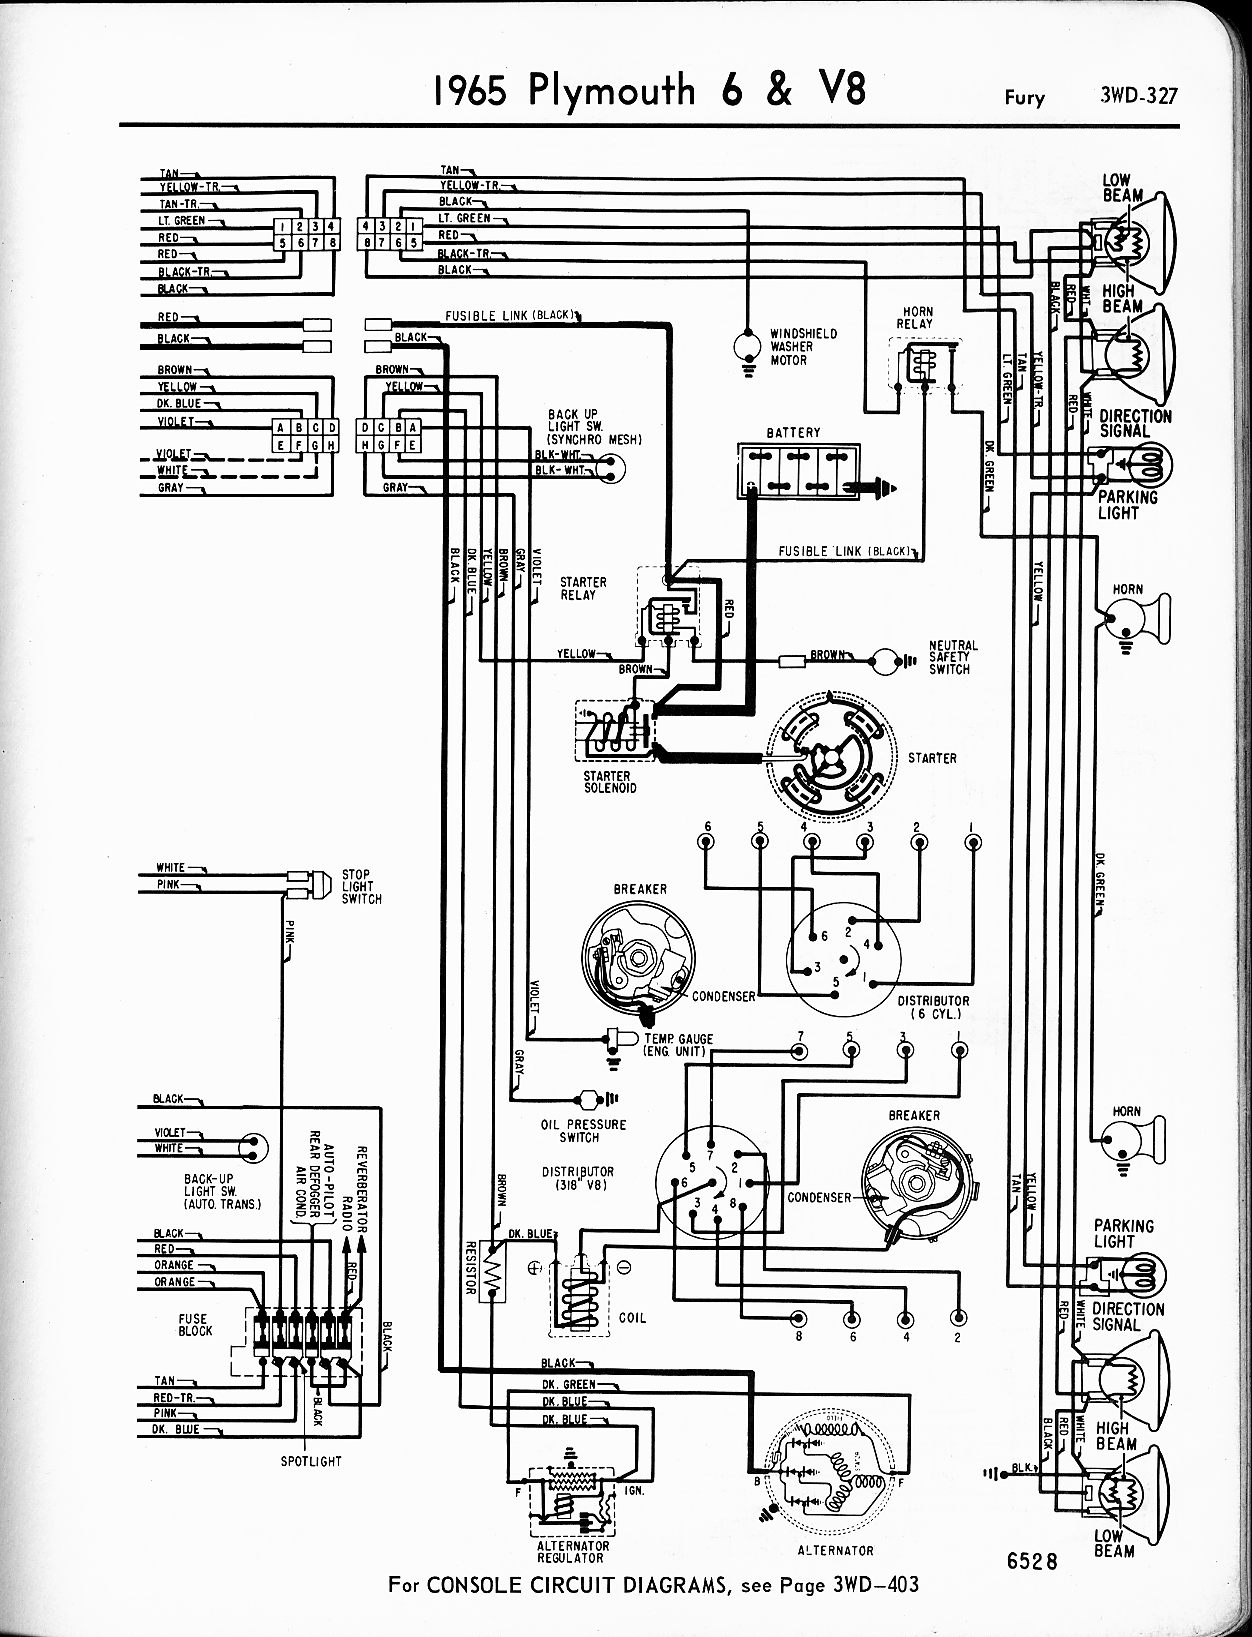 1942 ford pickup horn wiring diagram wiring diagram 1997 Ford Expedition Parts Diagram 1942 ford pickup horn wiring diagram best wiring library1942 1946 1947 1948 plymouth car color wiring